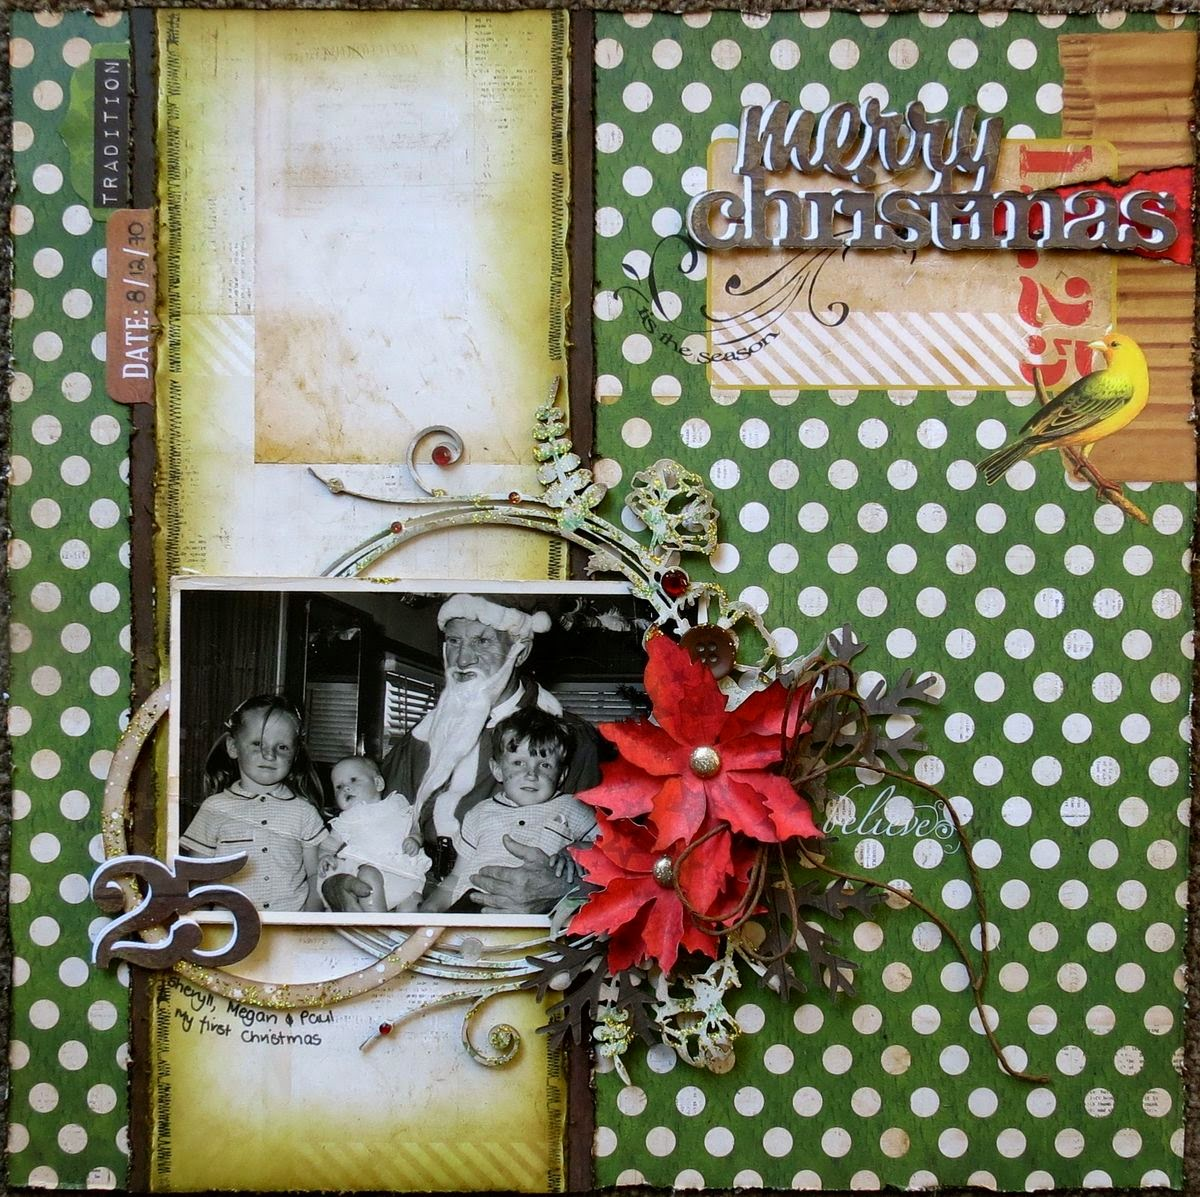 Merry Christmas Scrapbook Page by Megan Gourlay using BoBunny Christmas Collage